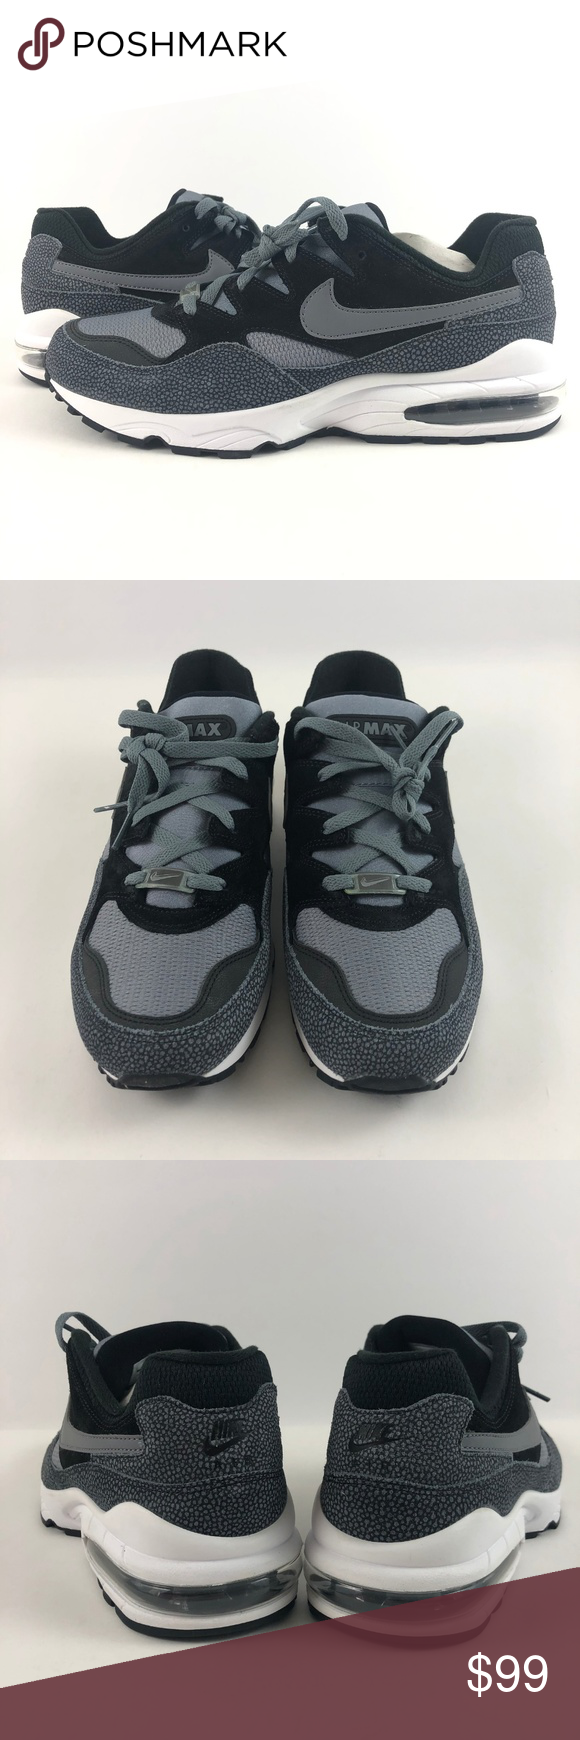 finest selection 4aa82 9184f Nike Air Max 94 SE Nike Air Max 94 SE AV8197 001 Sneaker Shoes Brand new